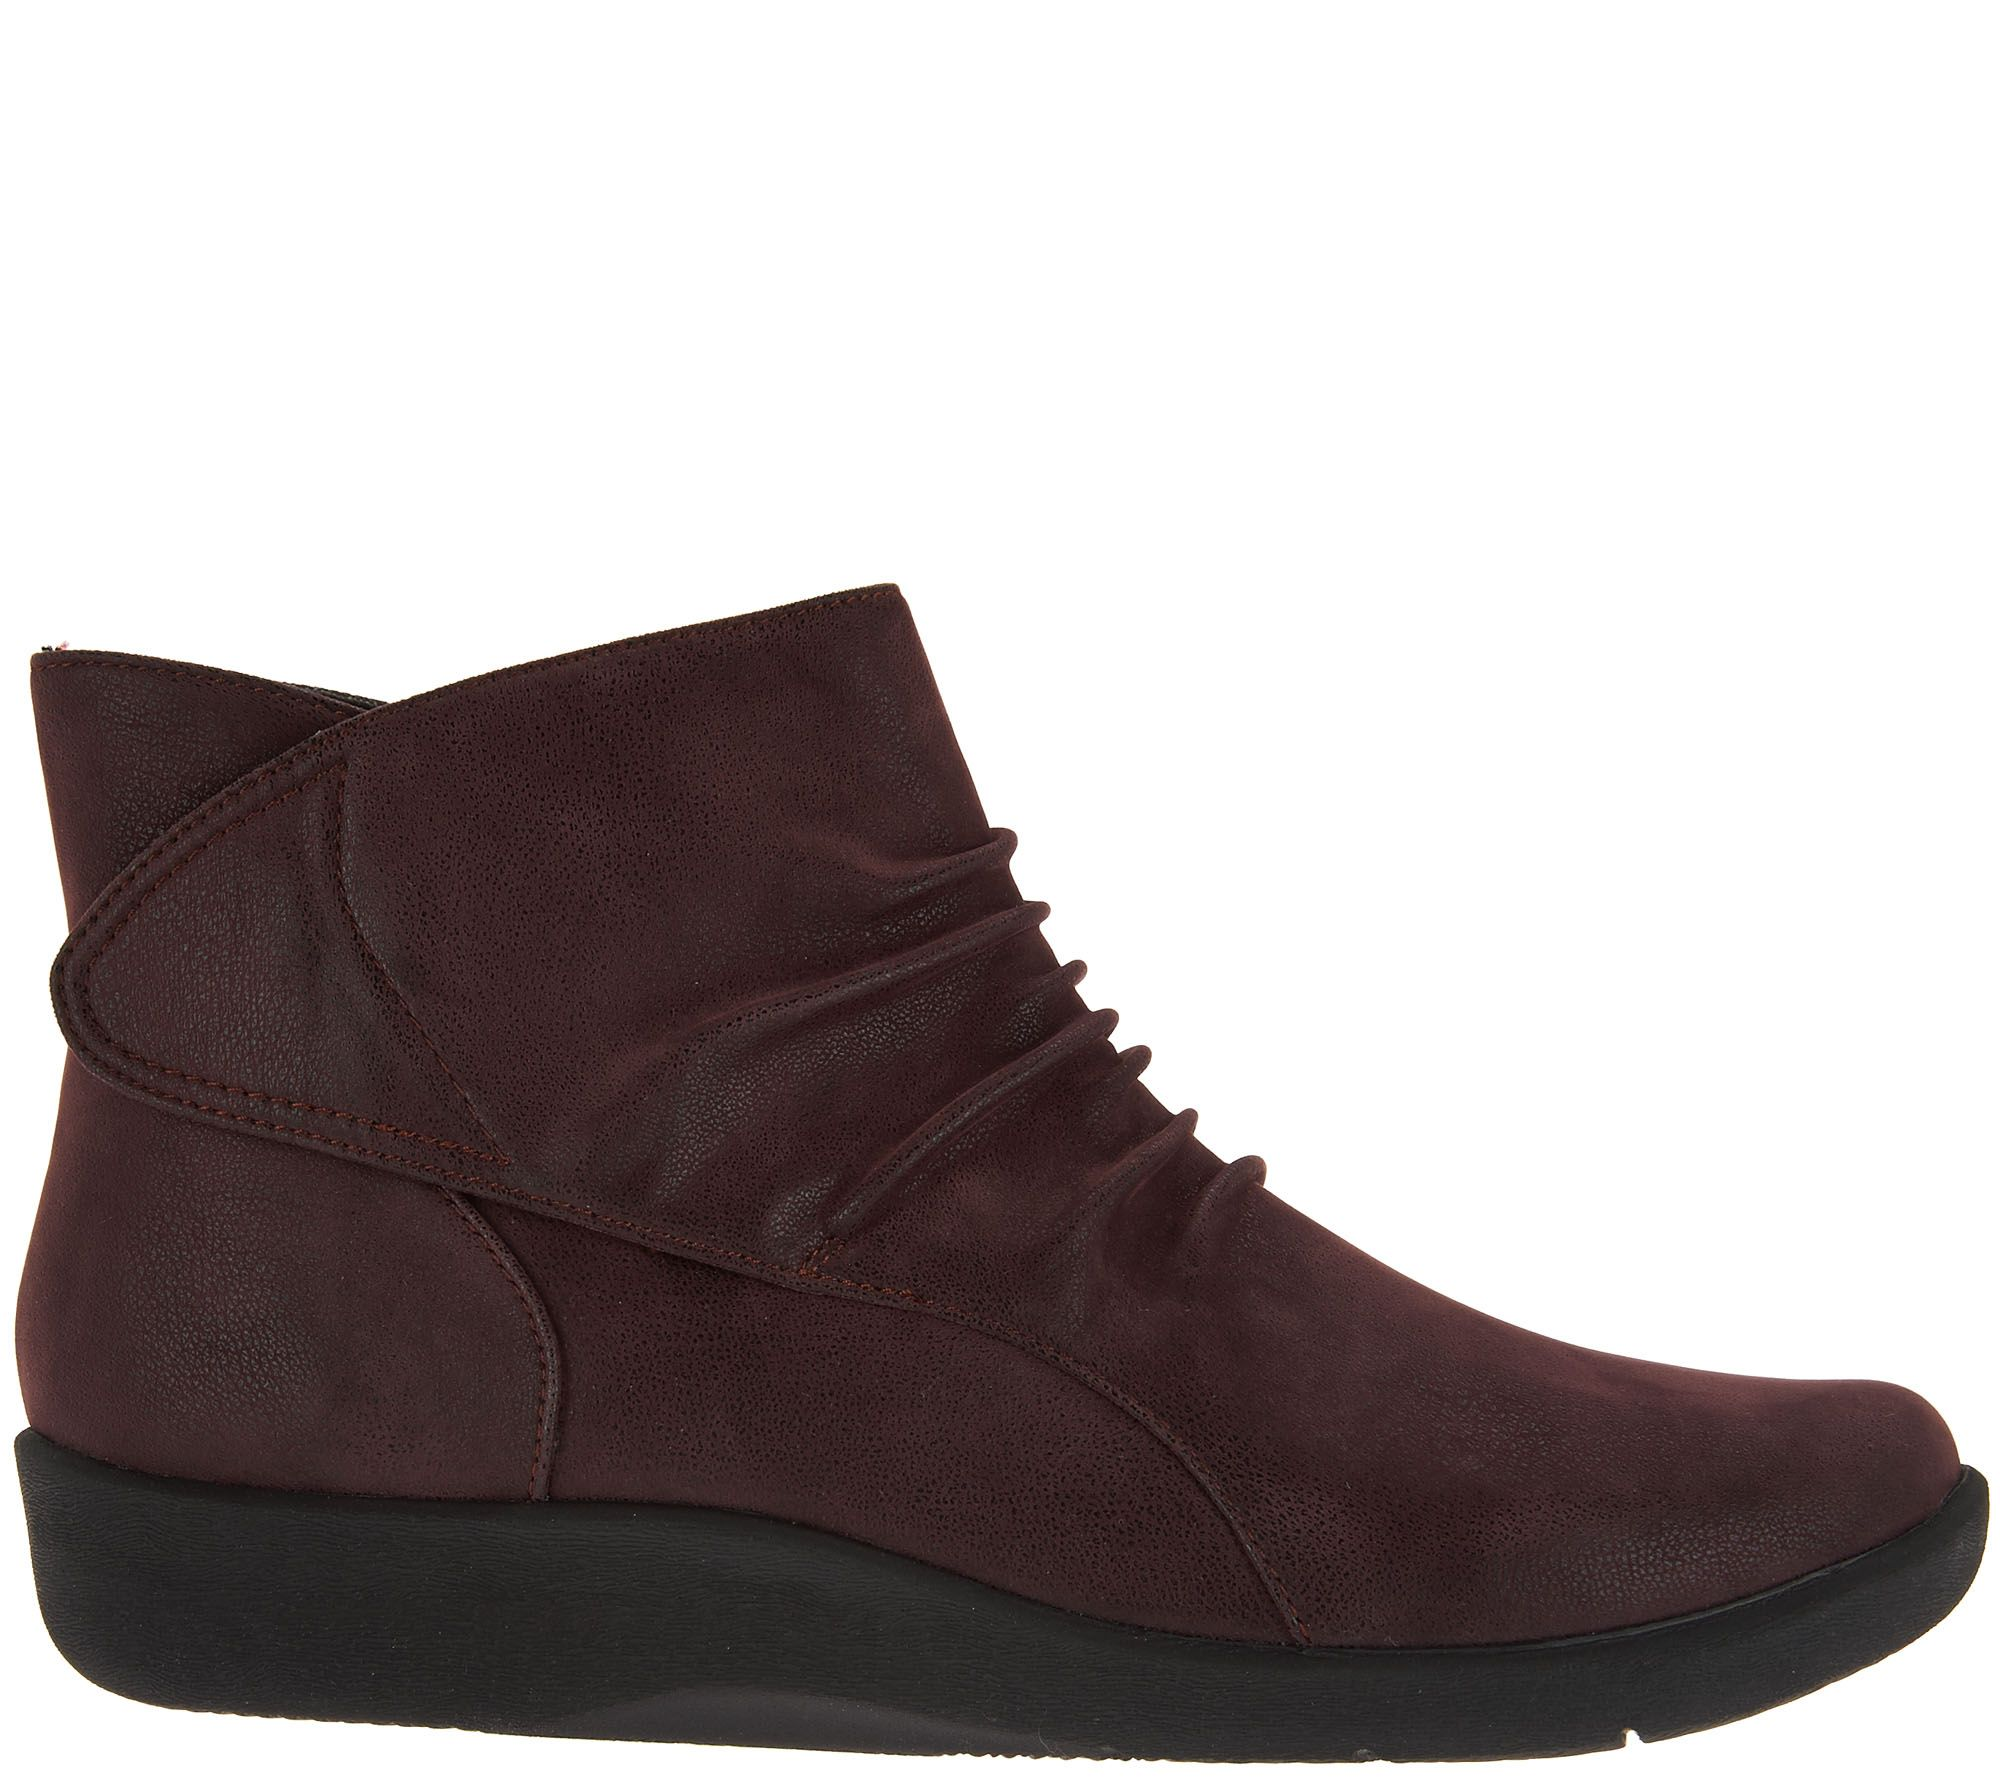 Cloudsteppers By Clarks Ruched Ankle Boots Sillian Sway